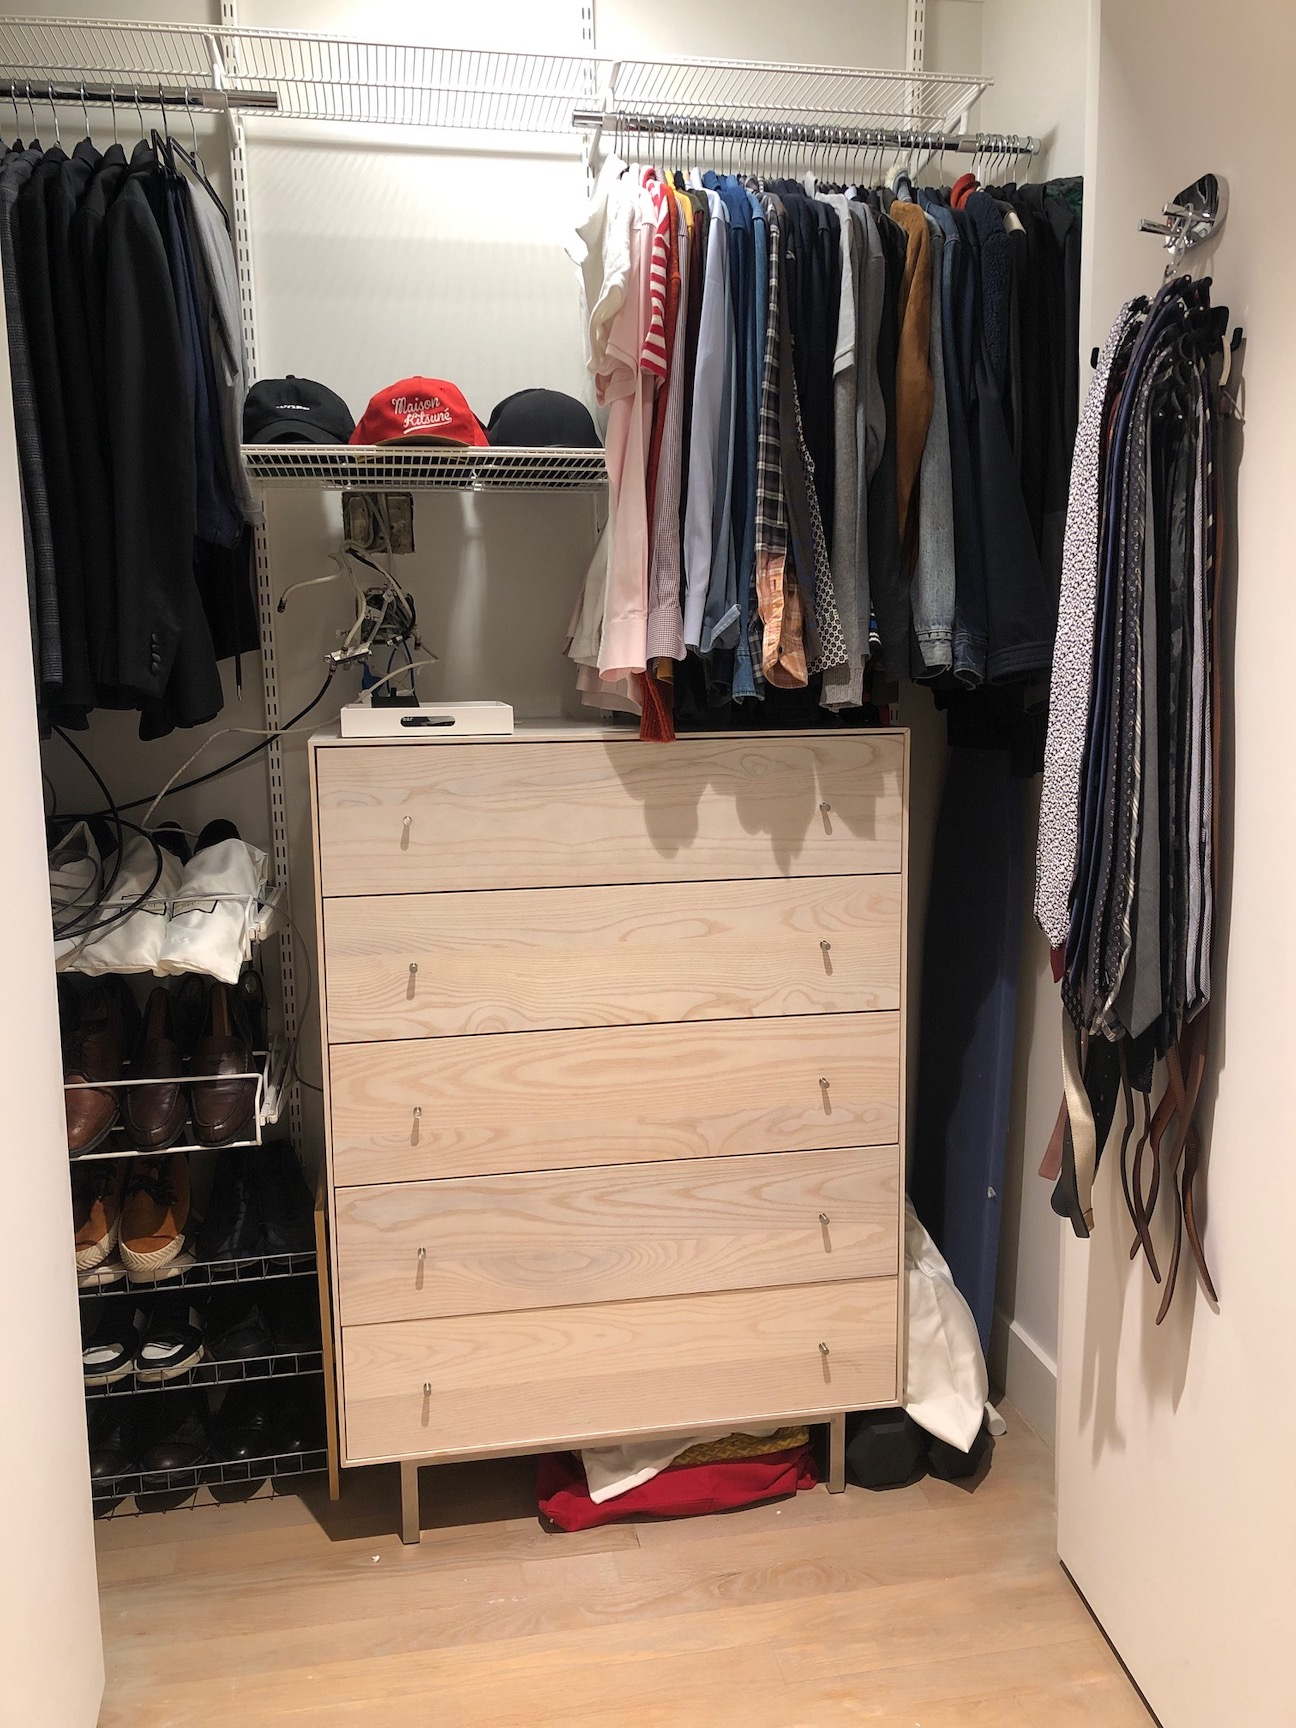 His New Closet